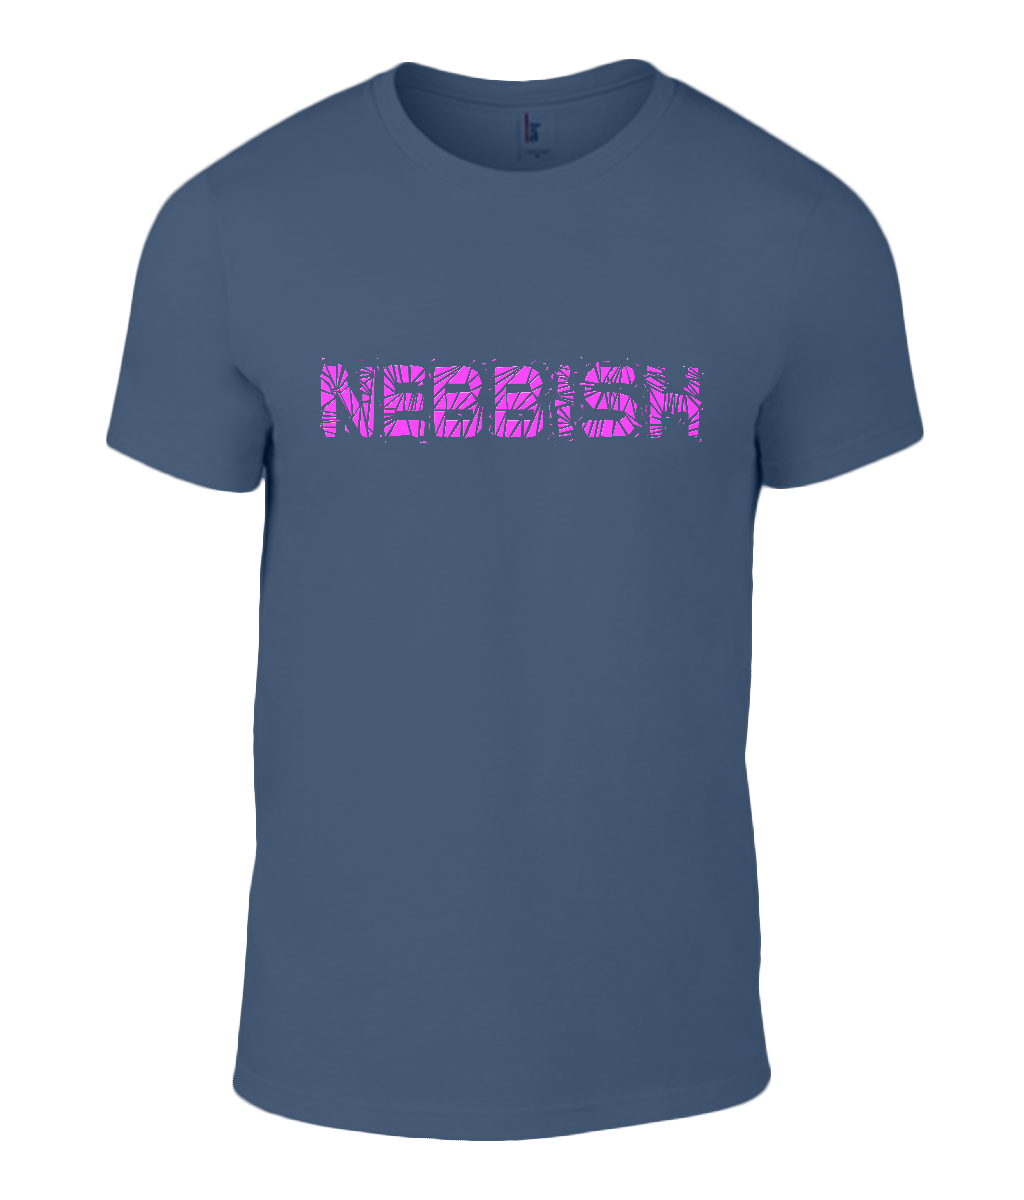 Round Neck T-Shirt - Nebbish - Lokshen Pudding UK - Navy